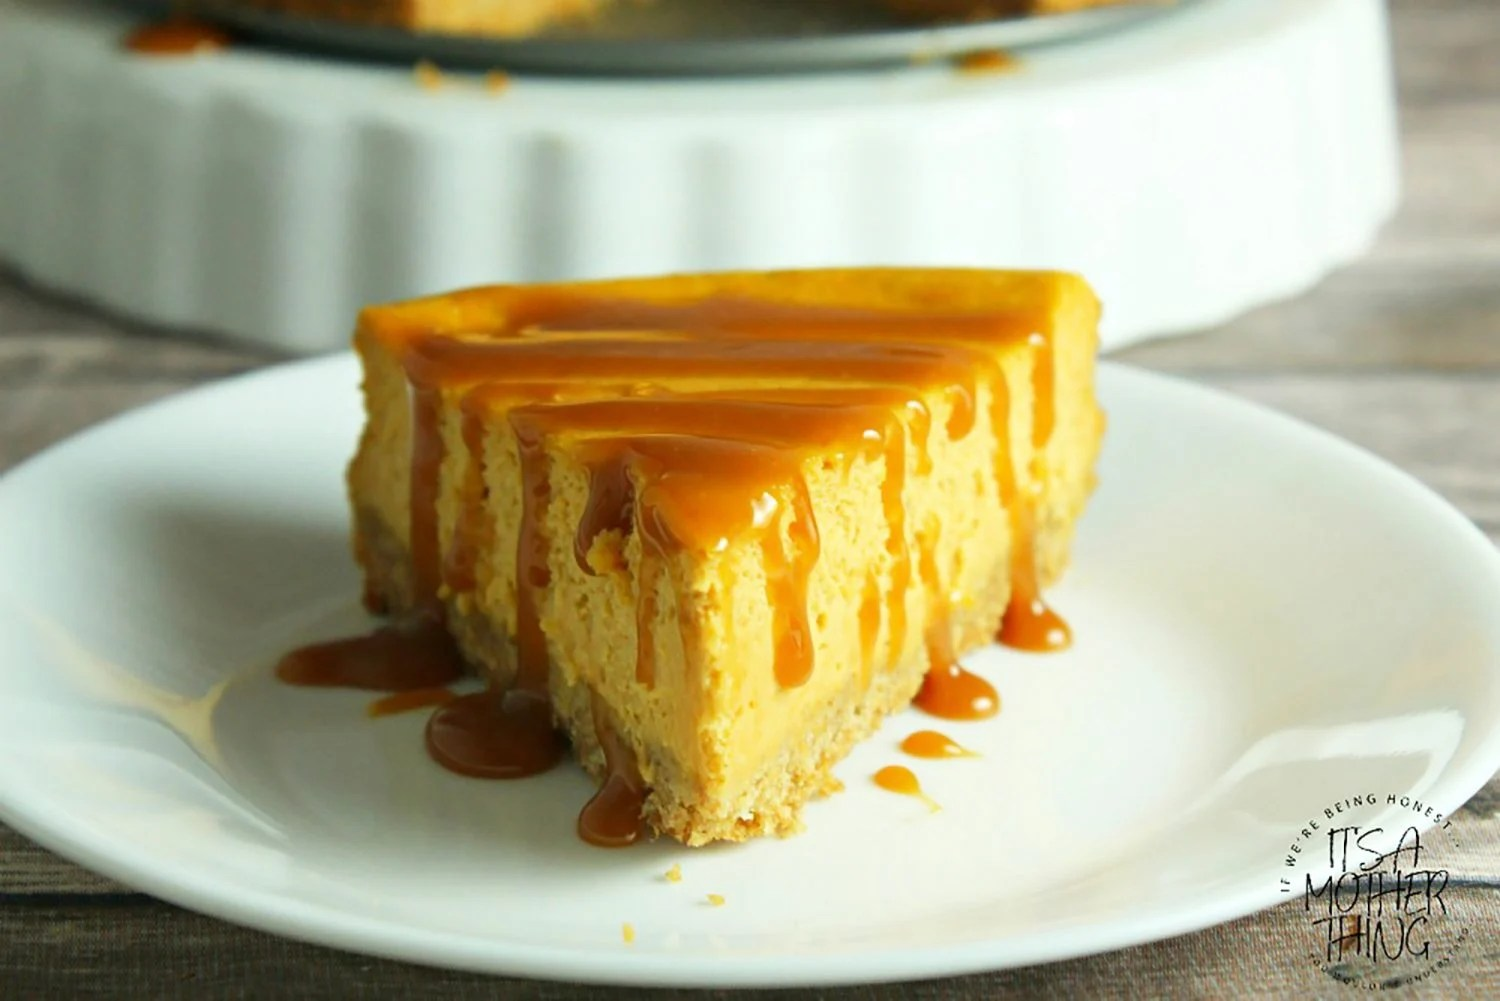 pumpkin dessert recipes, pumpkin spice, pumpkin, fall recipe, fall, pumpkin dessert, pumpkin spice dessert, recipe, recipes, kid foods, mom blog, mom blogger, mom bloggers, mom blogs, family friendly dishes, recipes, recipe, food blog, food bloggers